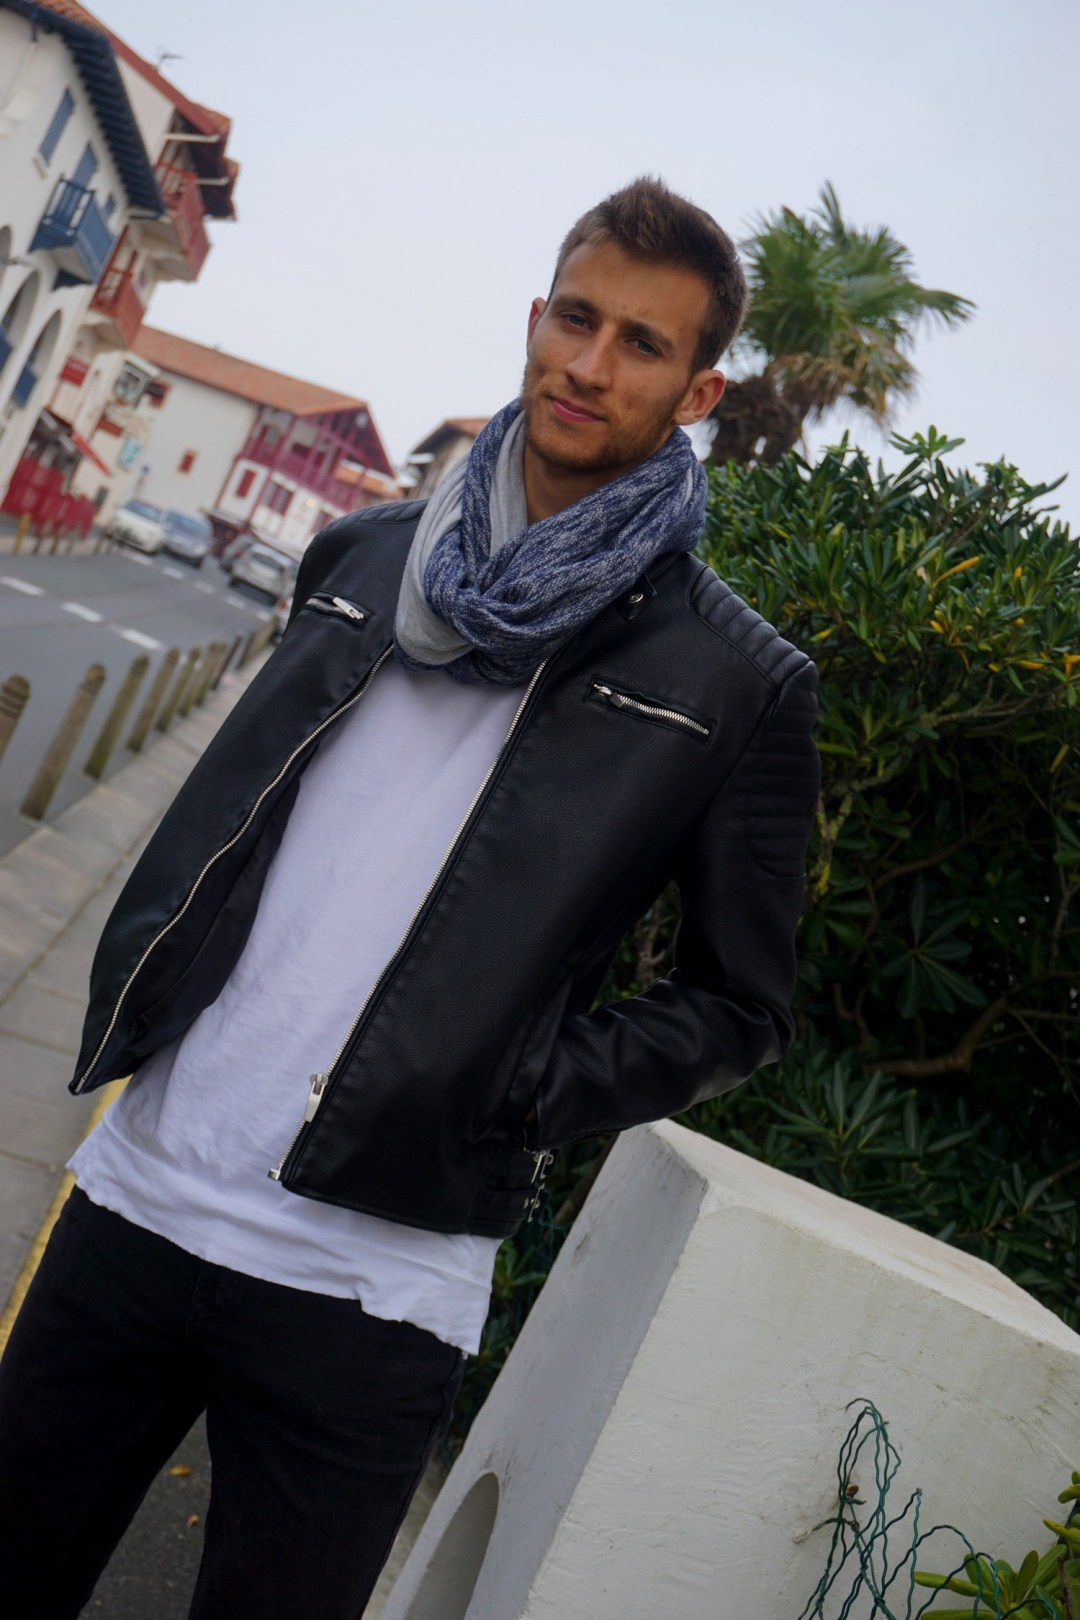 LOOK HOMME ROCK CHIC PERFECTO ZARA BLOG MODE COUPLE BORDEAUX BIDART WEEK END DANS LE PAYS BASQUE 07